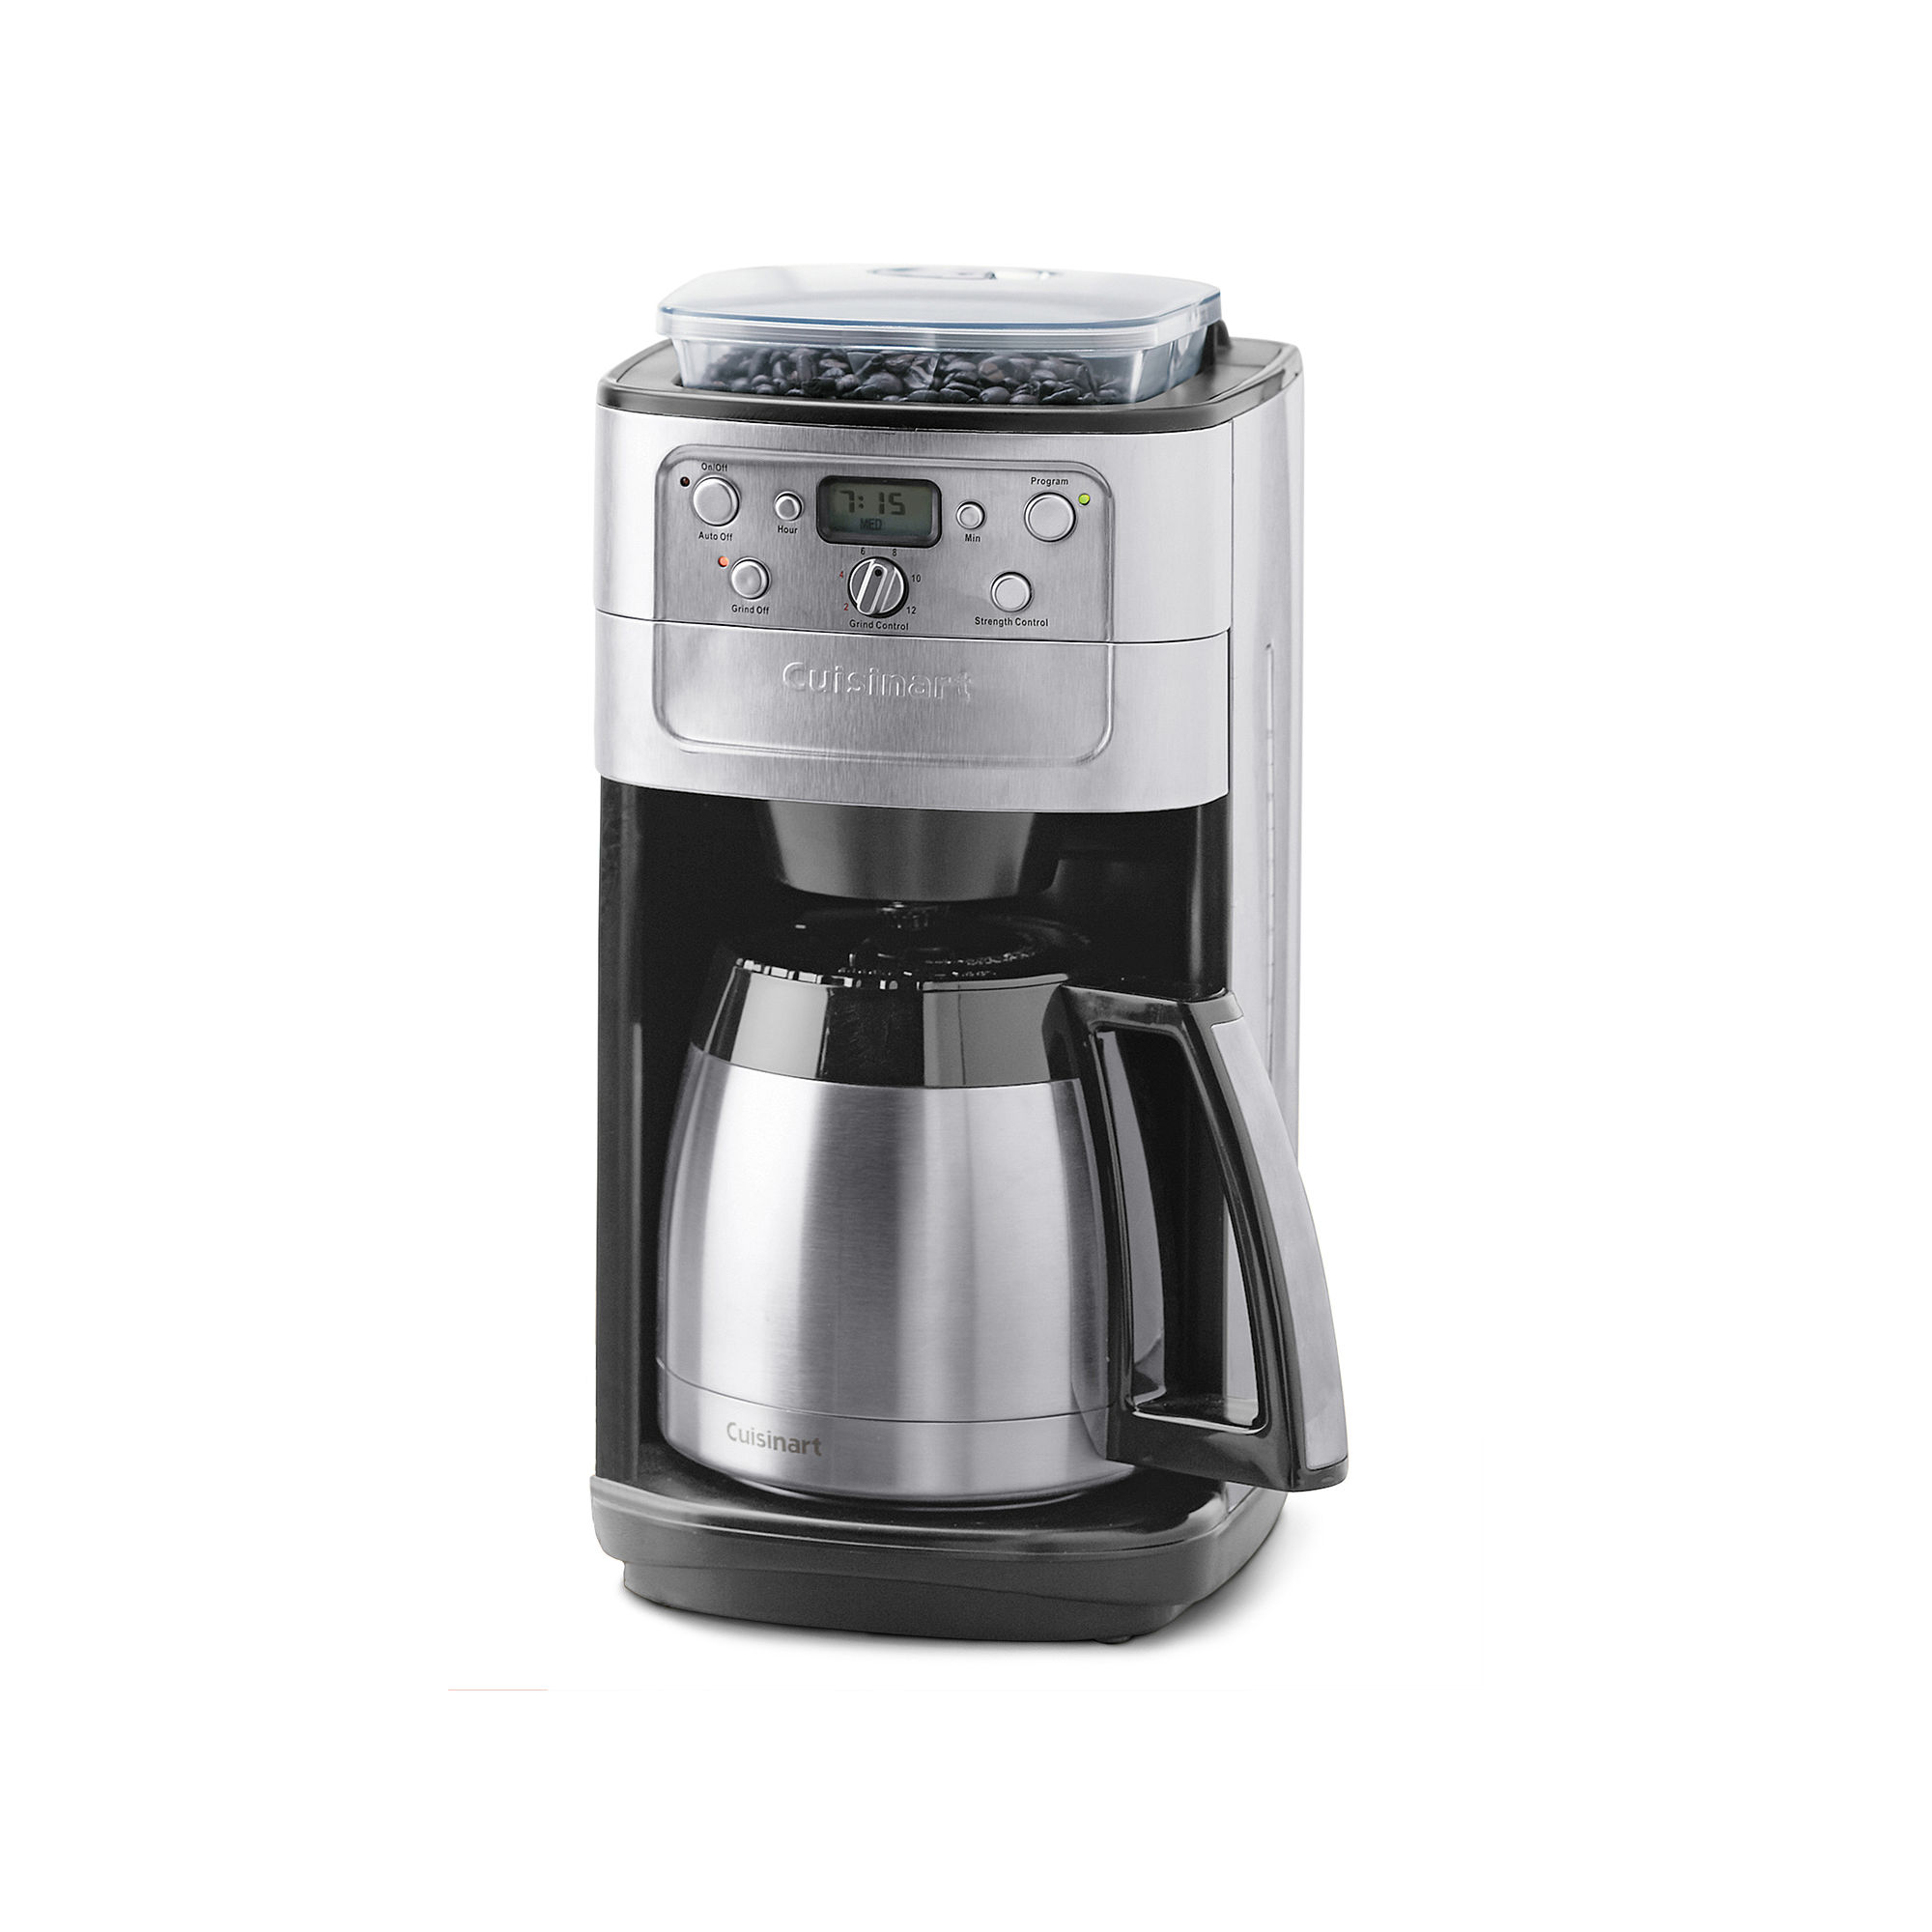 Cuisinart Coffee Maker Automatic Brew Instructions : Dgb 900bc cuisinart programmable burr grind brew with automatic burr grinder - Find it at Shopwiki